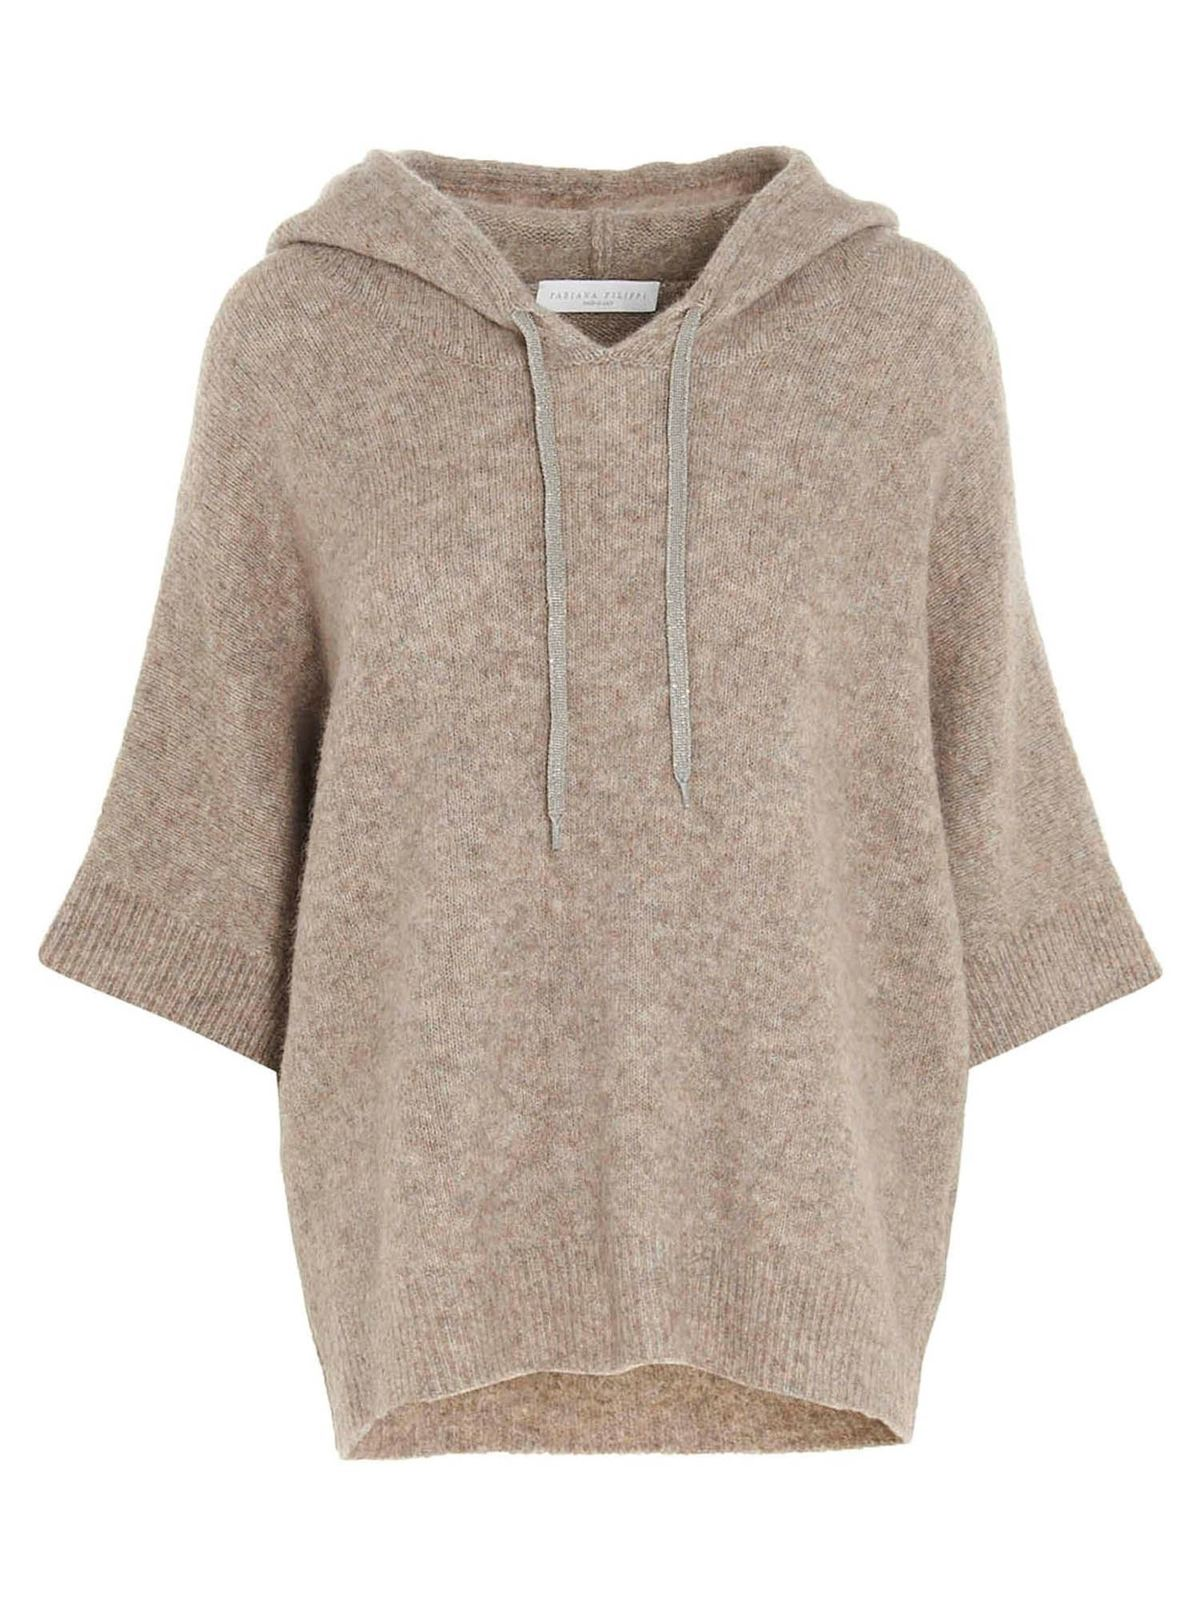 Fabiana Filippi HOODED SWEATER IN PINE NUT COLOR